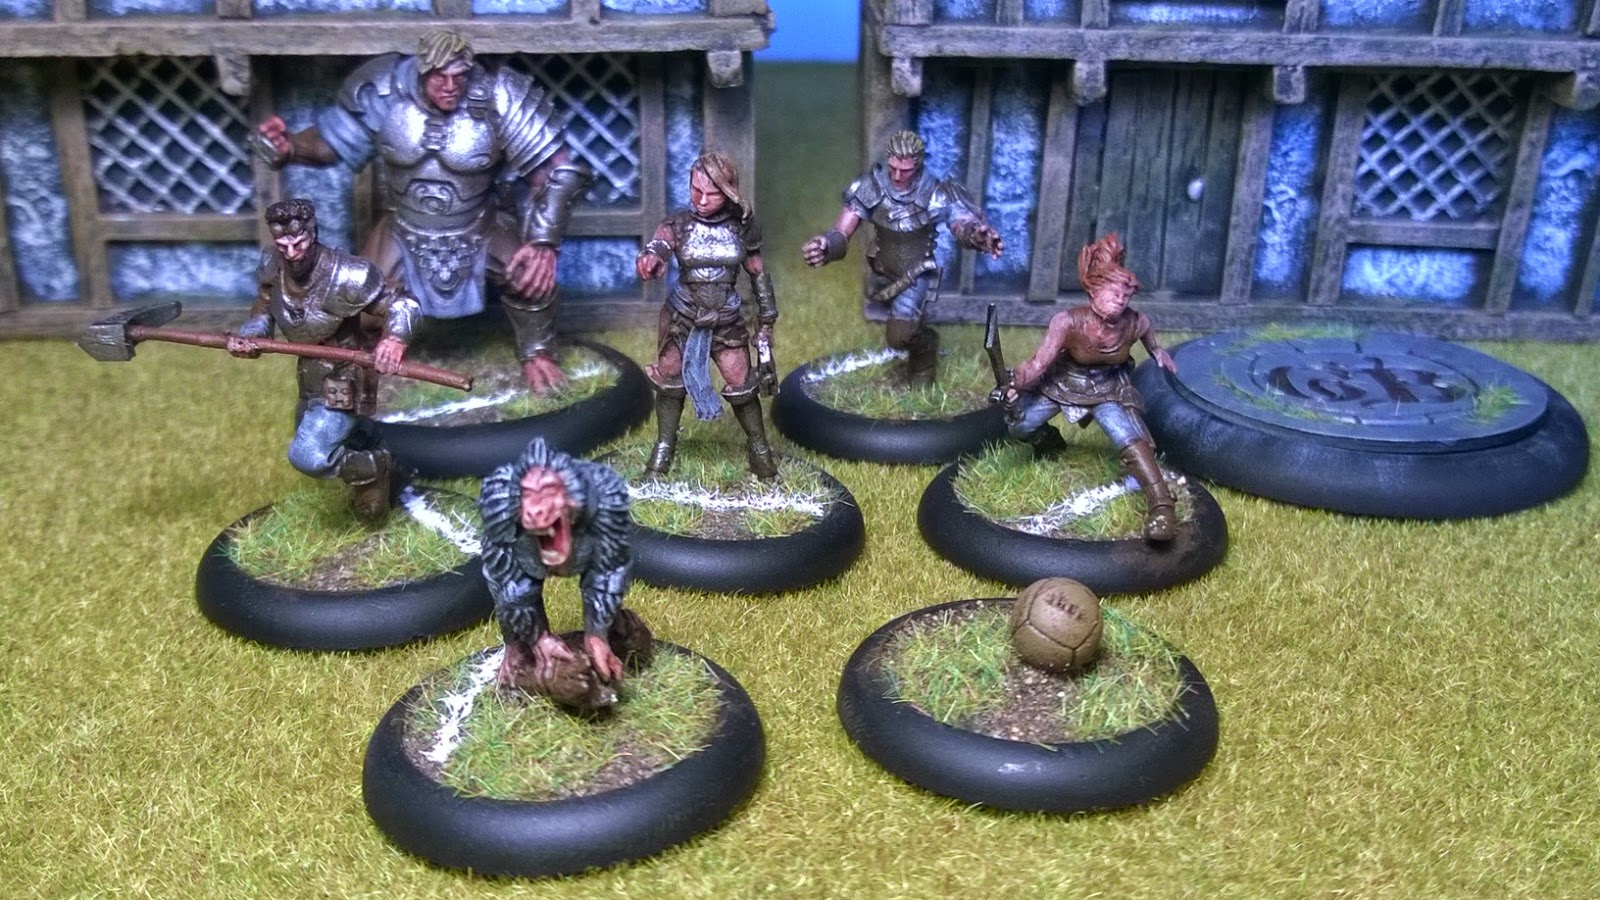 mason's guild guildball team painted